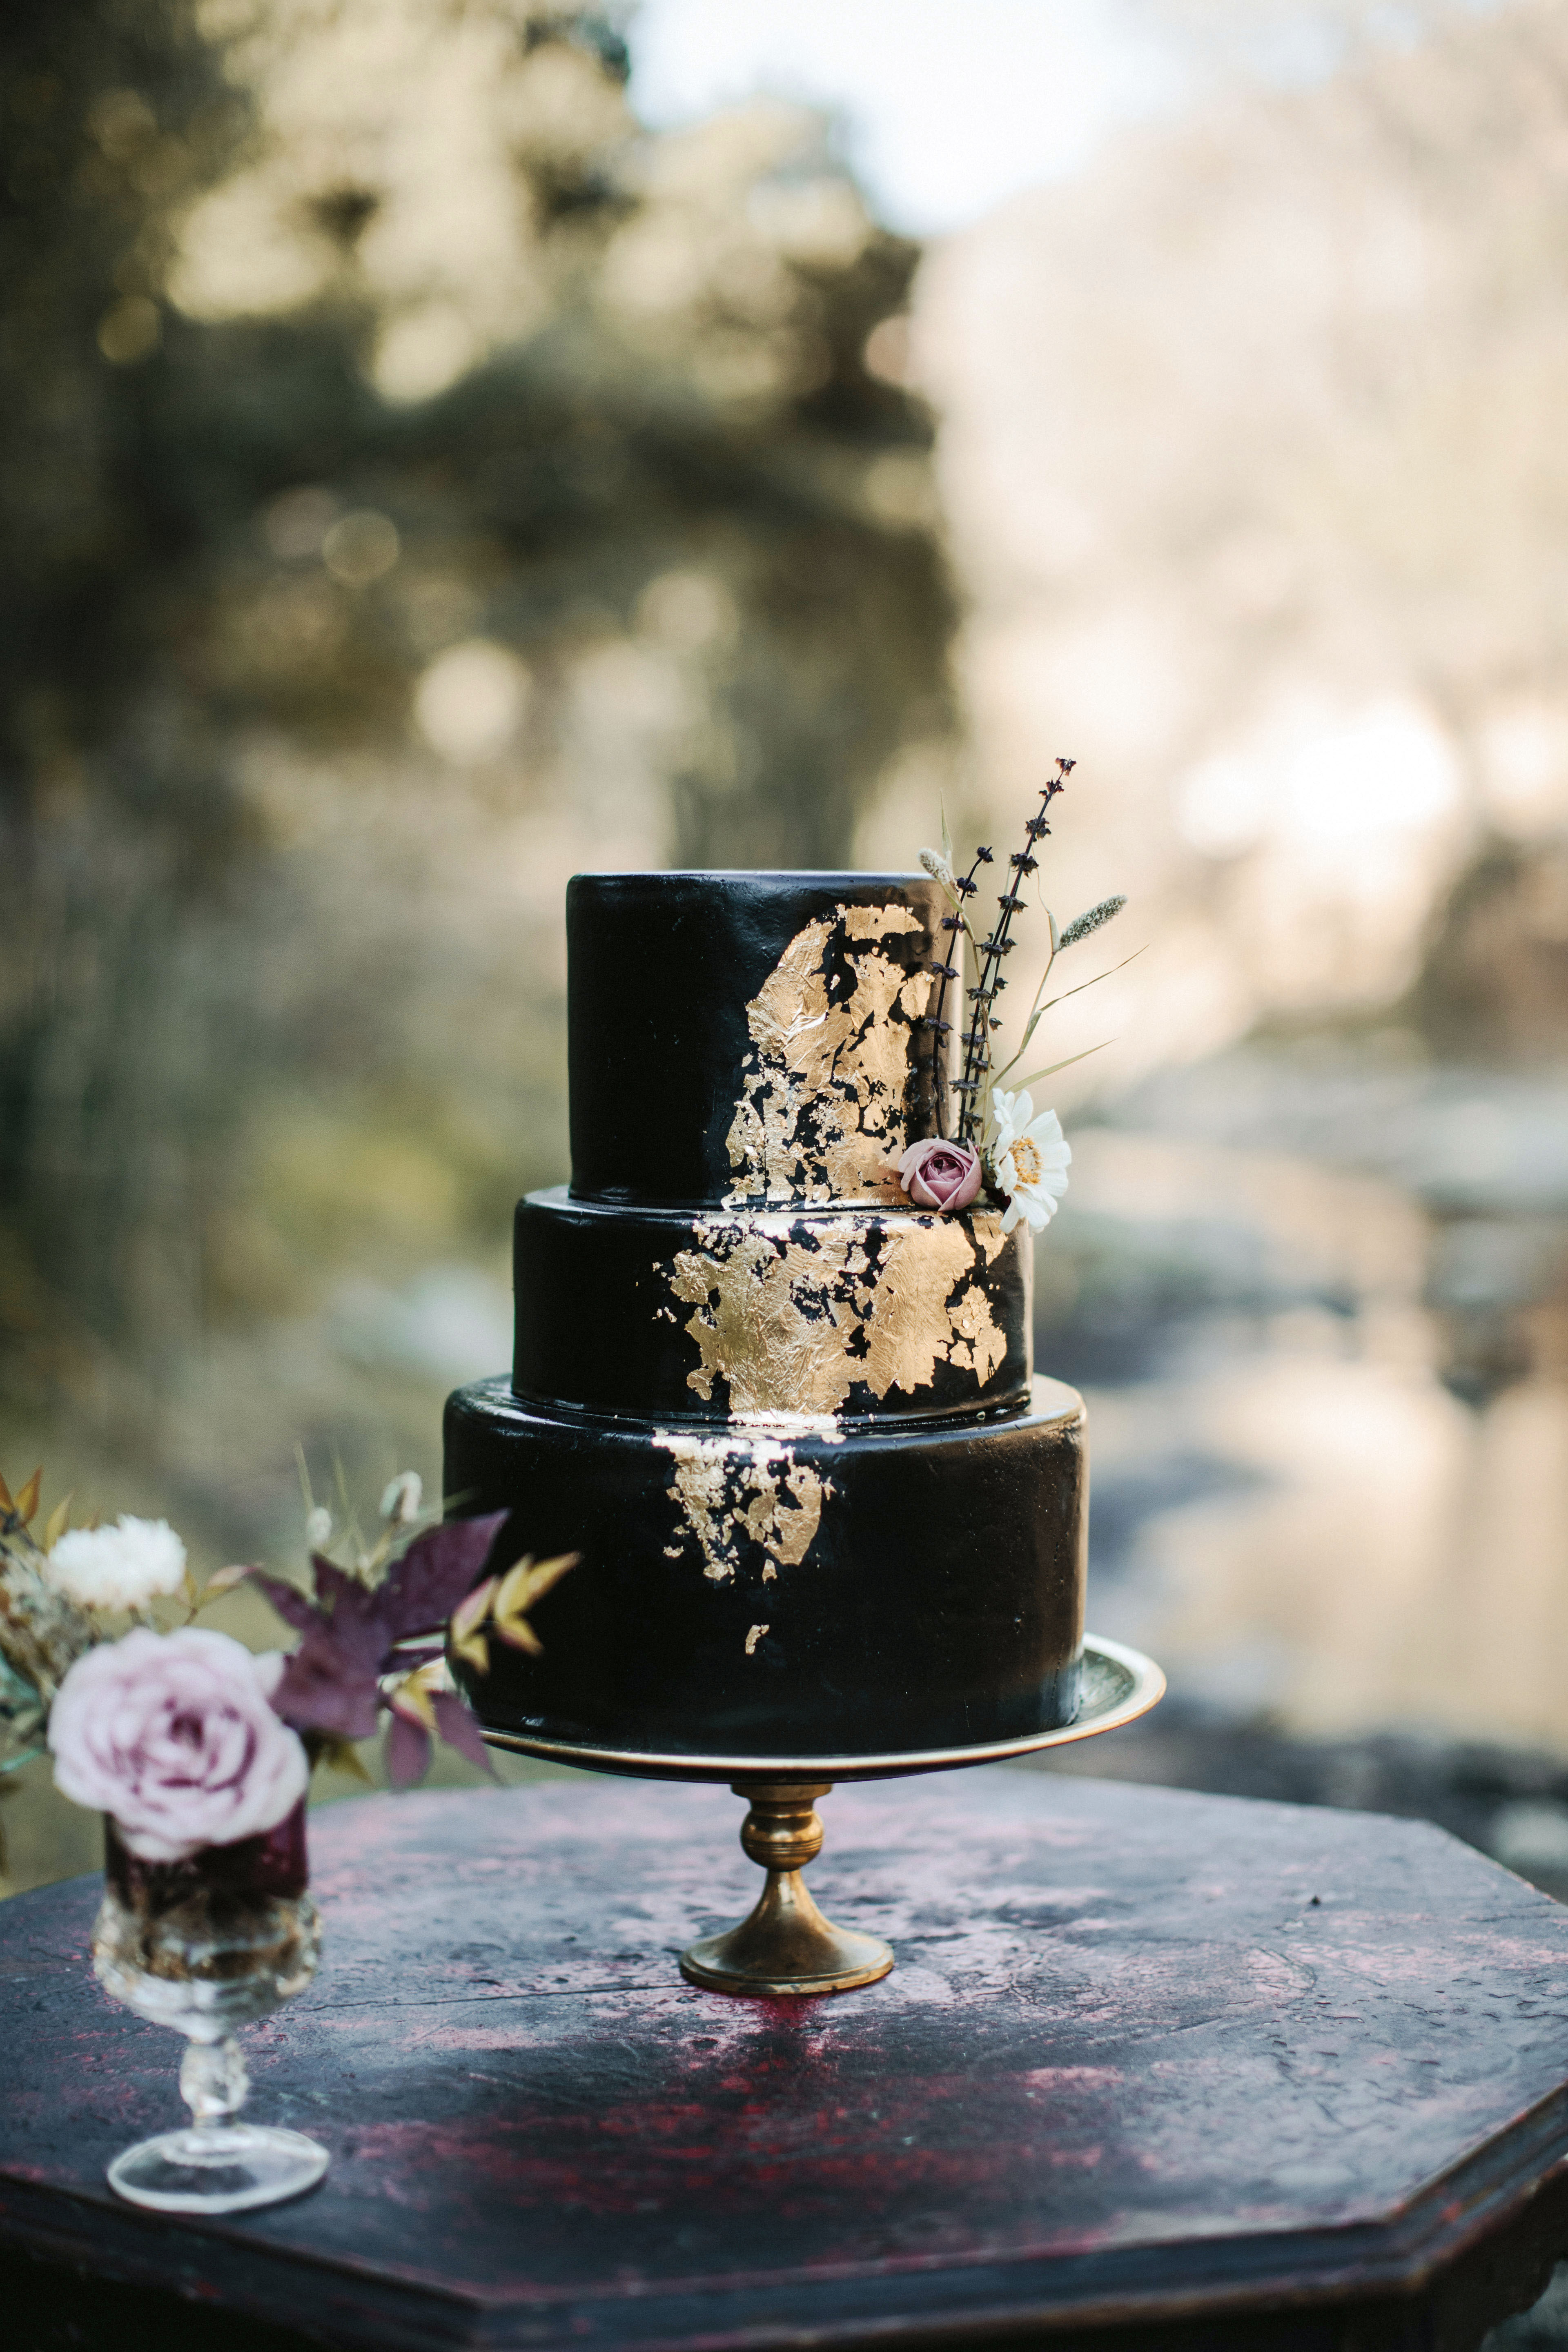 A Gilded Cake